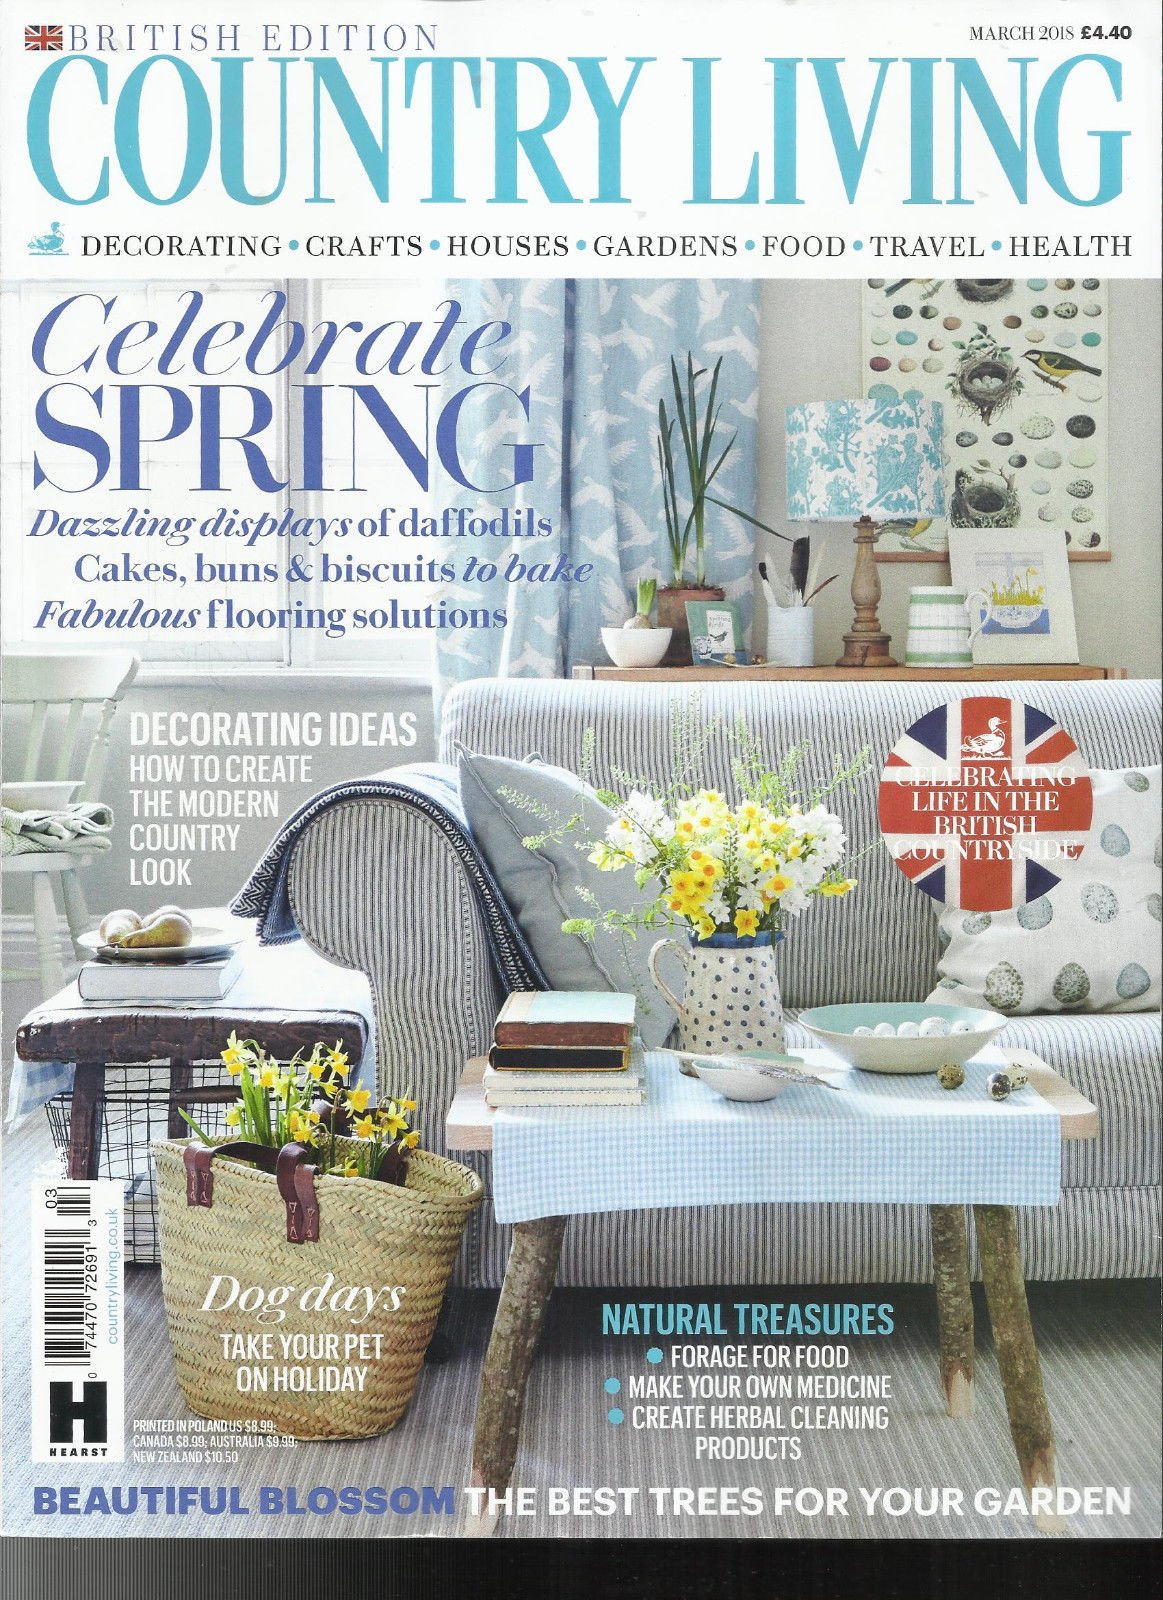 COUNTRY LIVING MAGAZINE, MARCH, 2018 BRITISH EDITION CELEBRATE SPRING